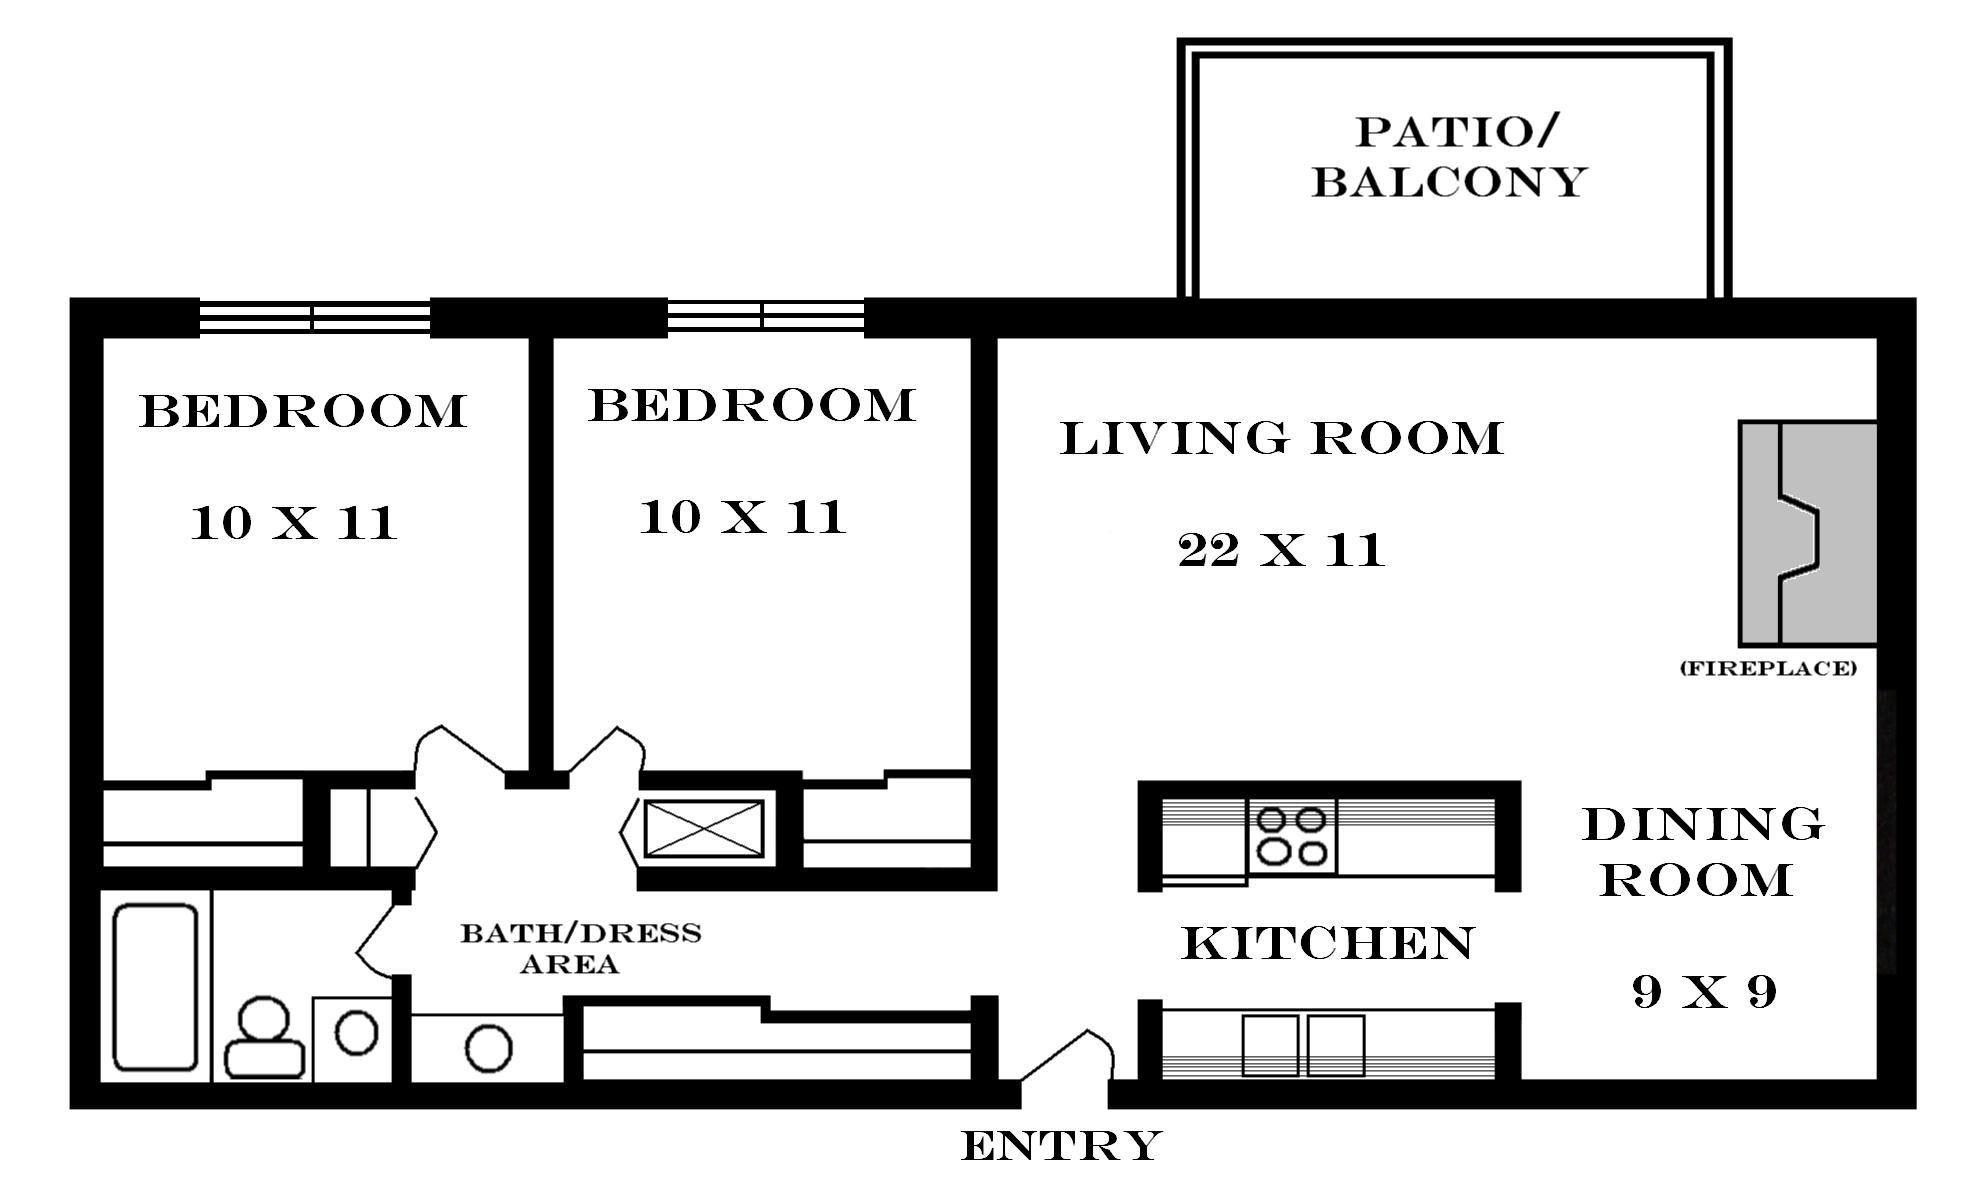 Small house floor plans 2 bedrooms 900 tiny houses House plans with 2 bedrooms in basement